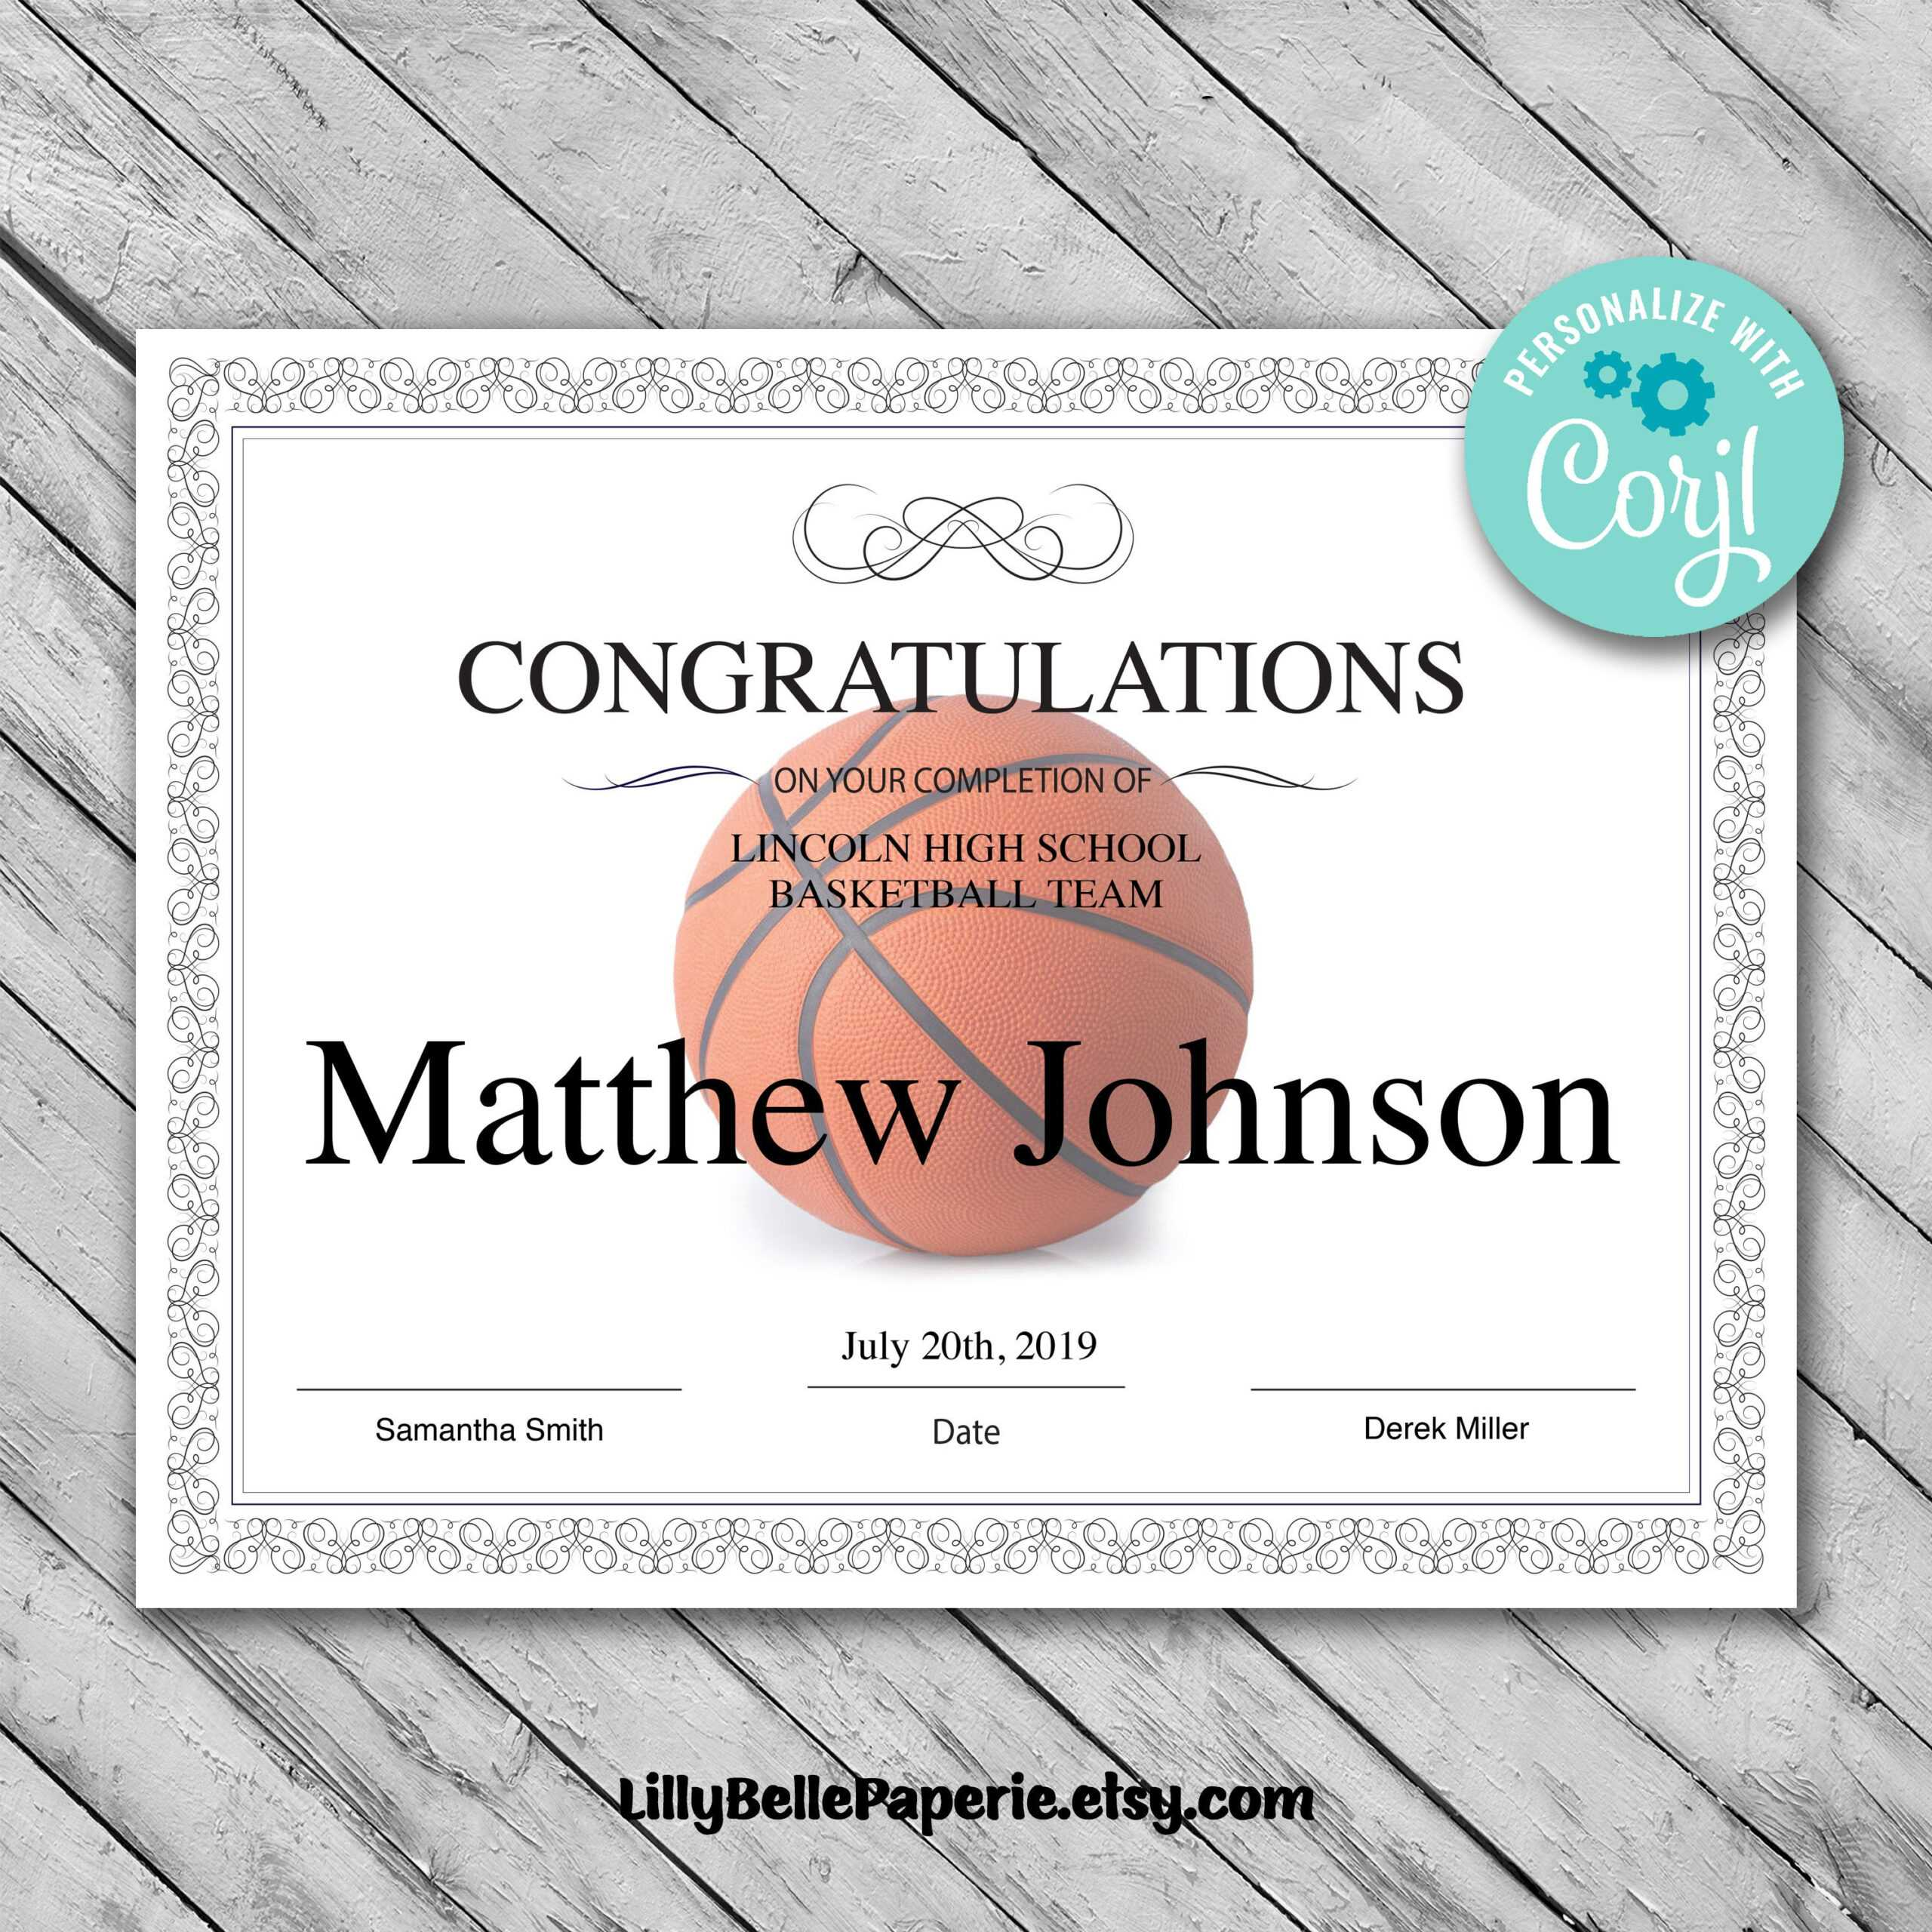 Printable Basketball Certificate Template - Editable Certificate Template -  Basketball Certificate Template Personalized Diploma Certificate inside Basketball Certificate Template